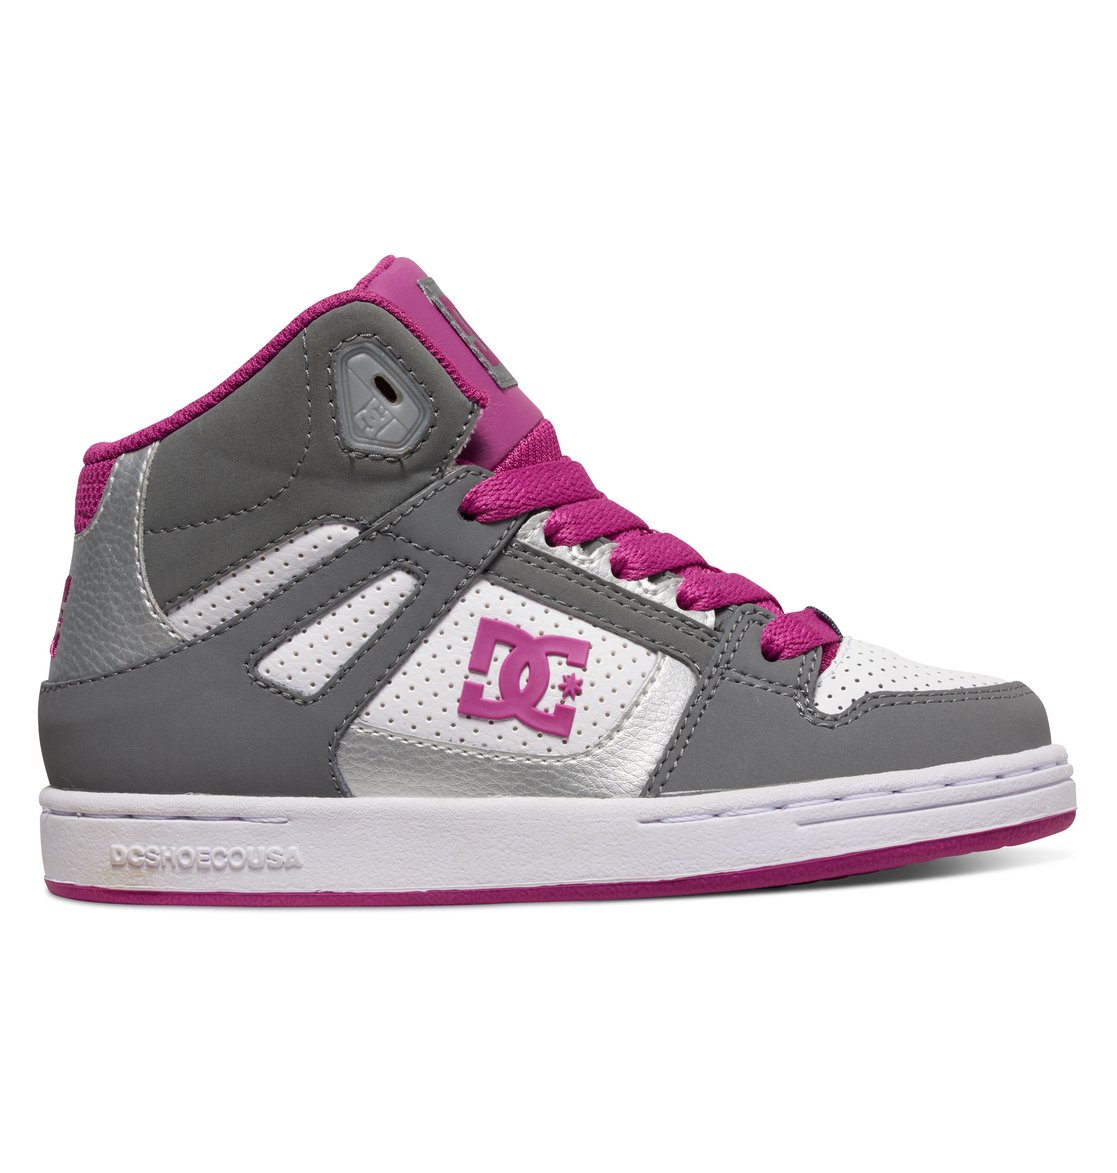 rebound hightop shoes 3613372105180 dc shoes